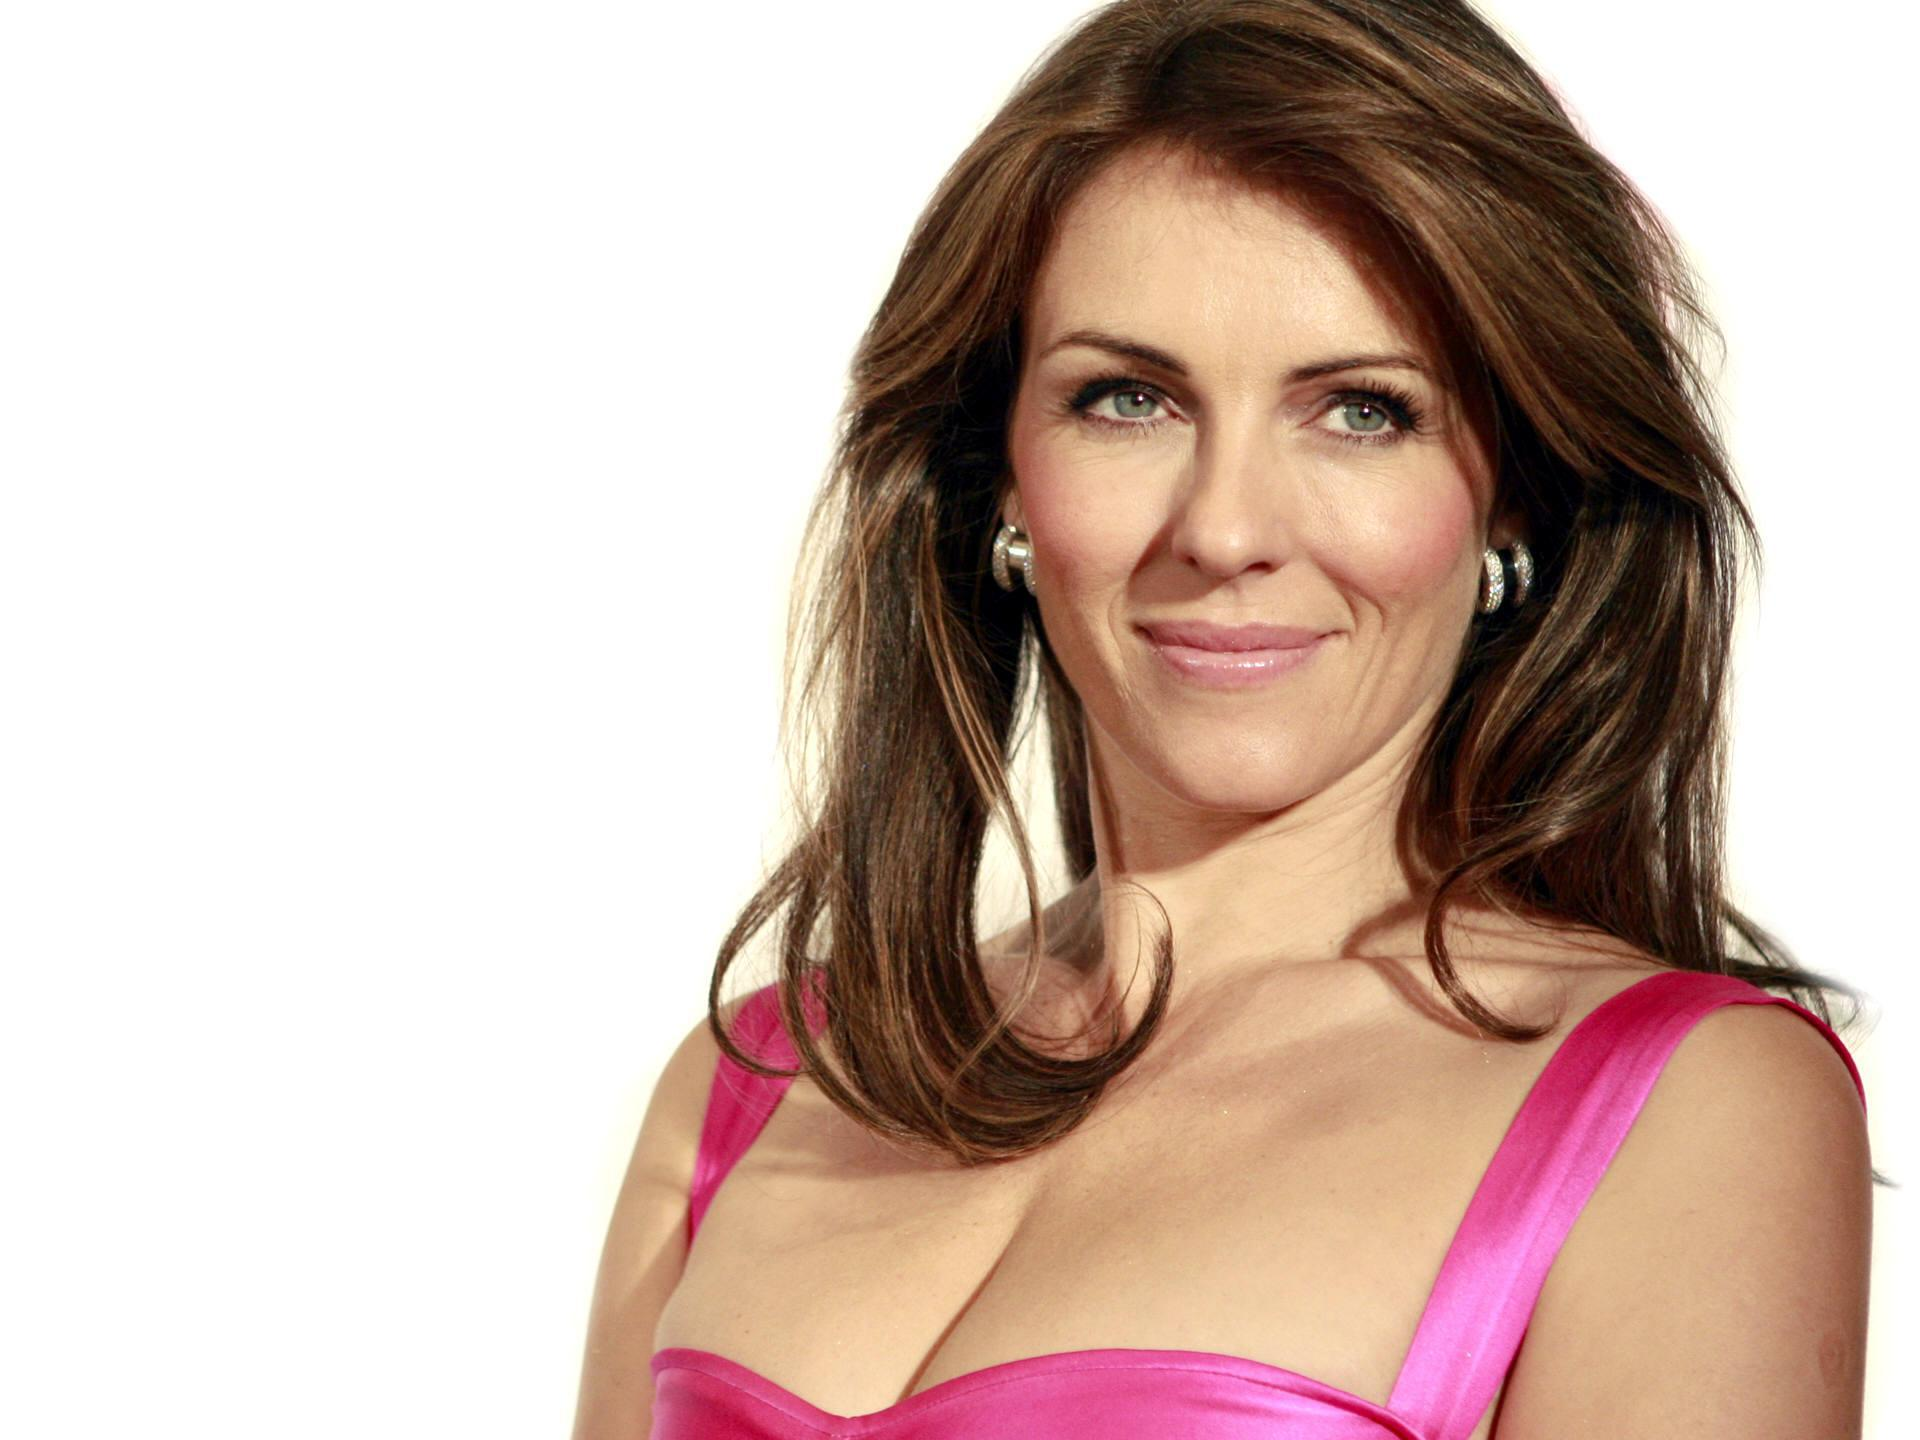 Elizabeth Hurley Wallpapers Images Photos Pictures Backgrounds 1920x1440